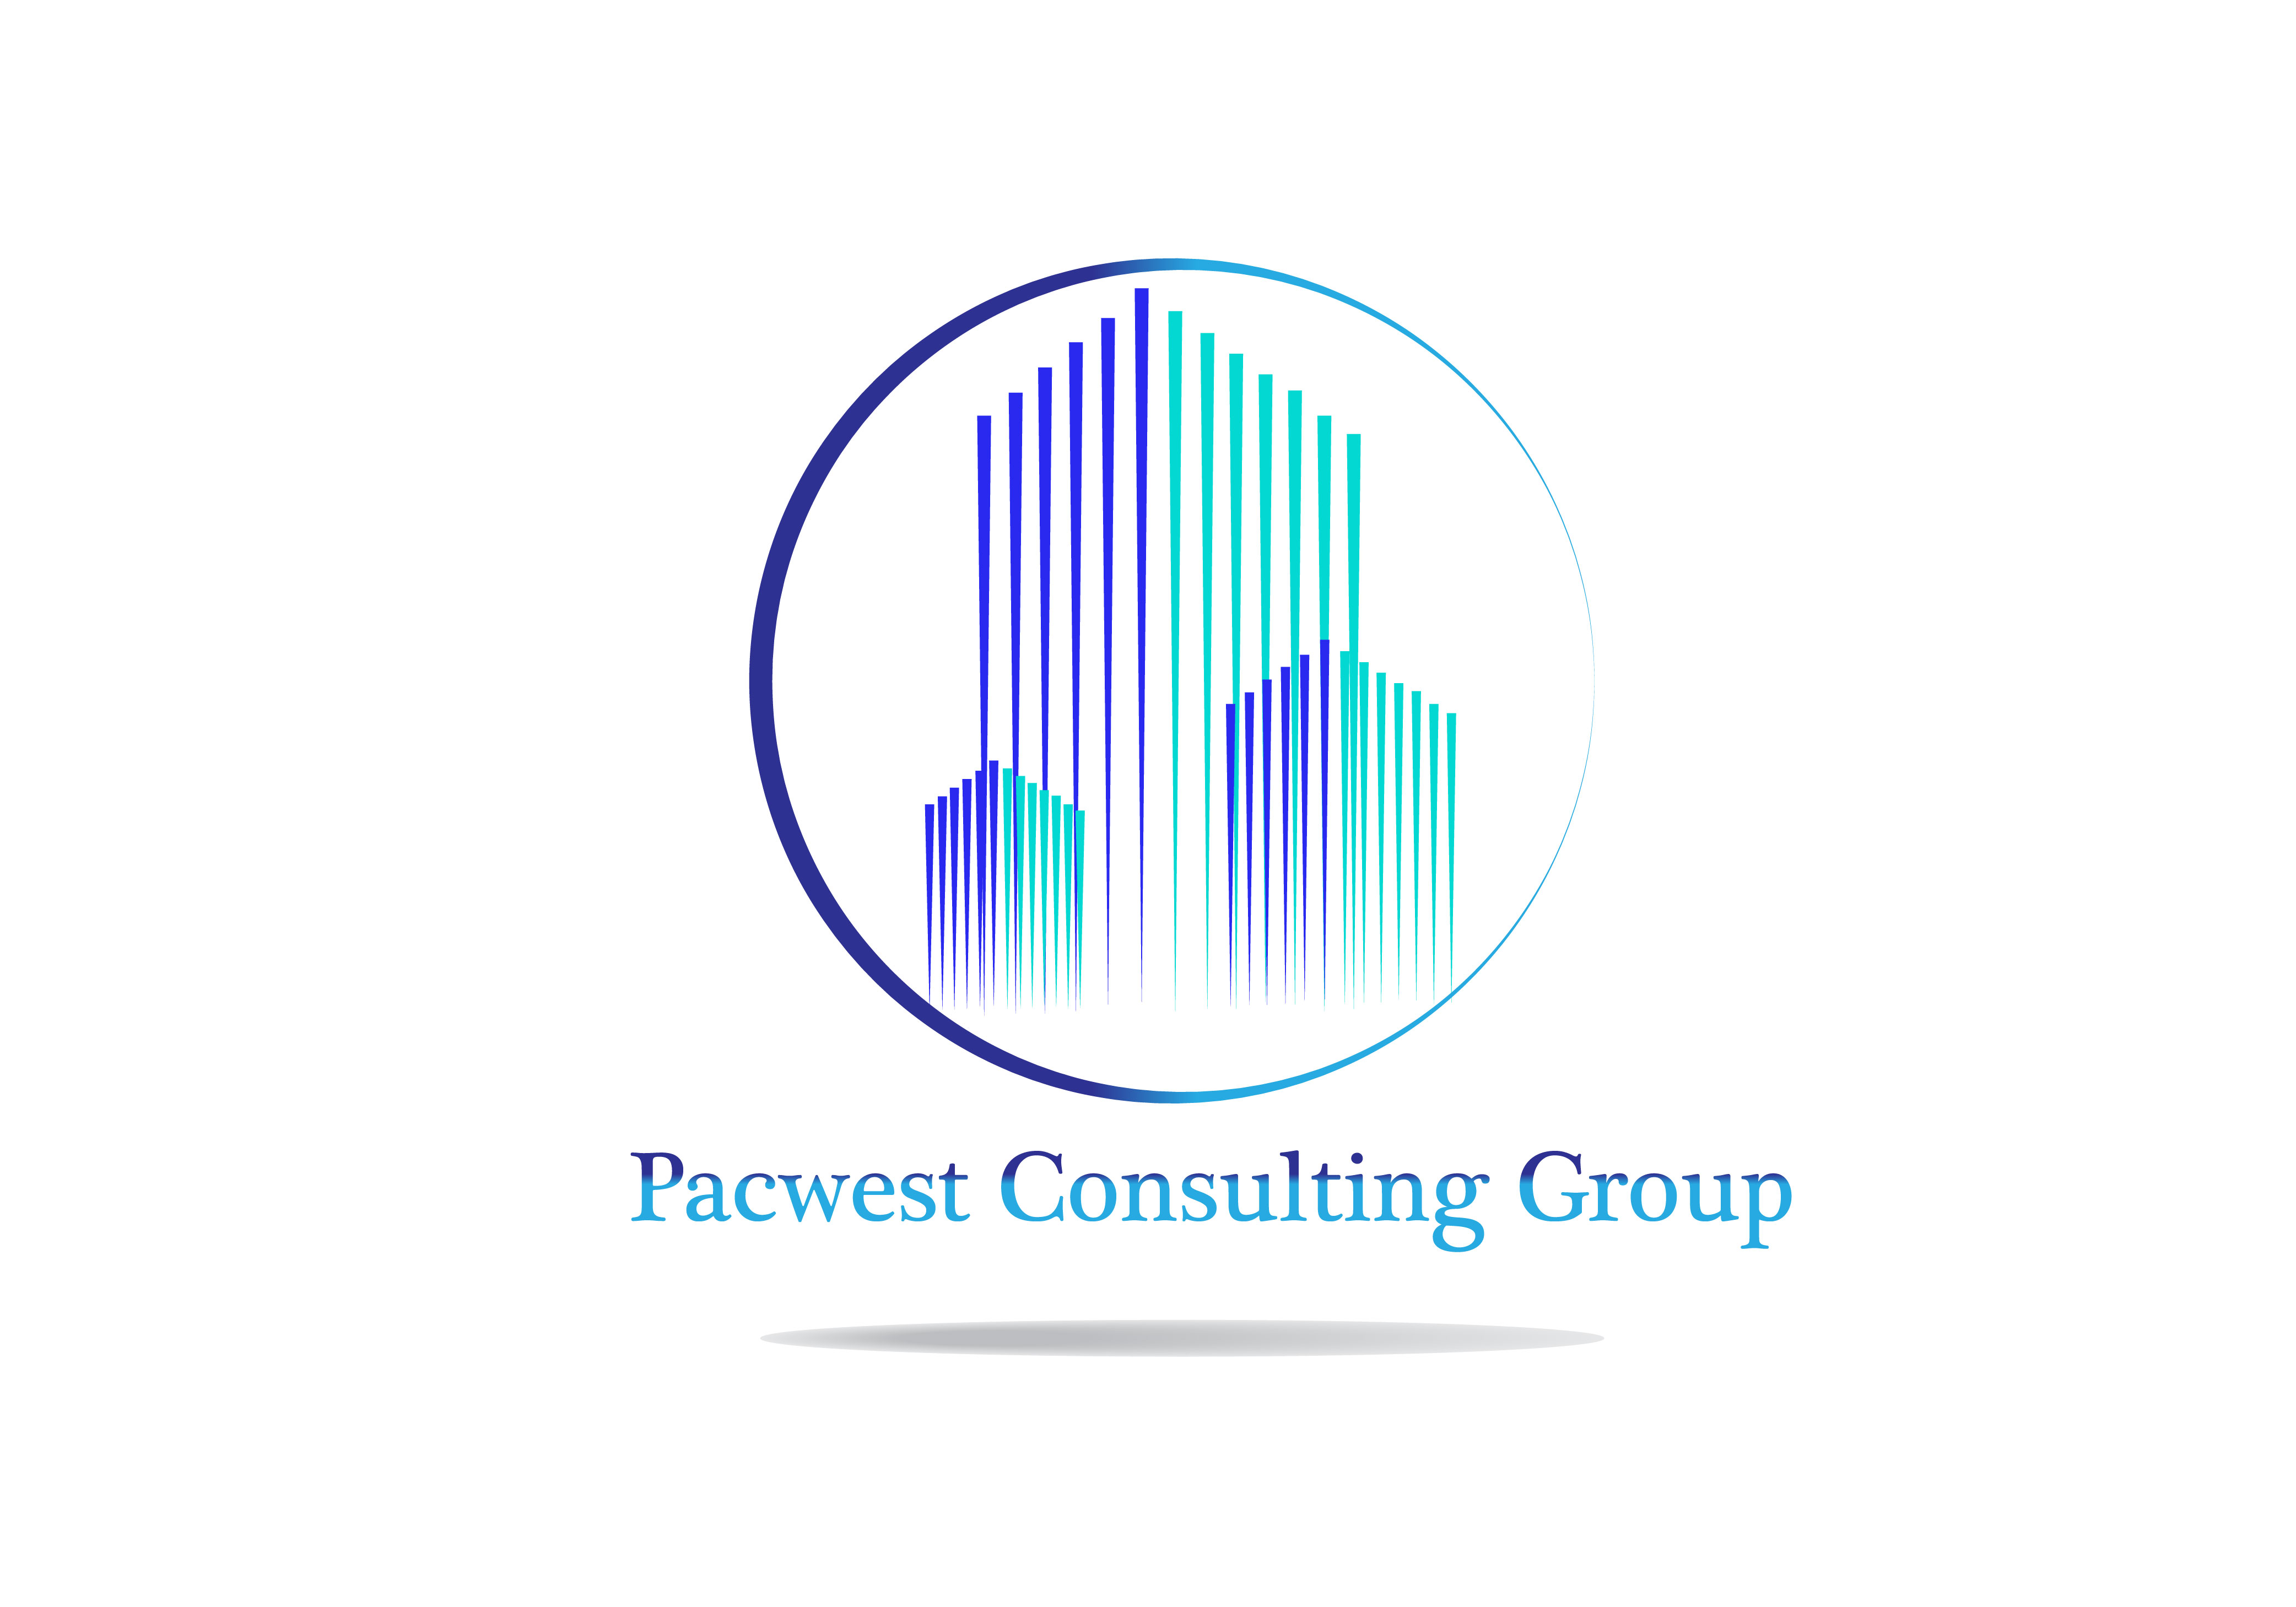 Logo Design by Bilal Baloch - Entry No. 40 in the Logo Design Contest Imaginative Logo Design for Pacwest Consulting Group.